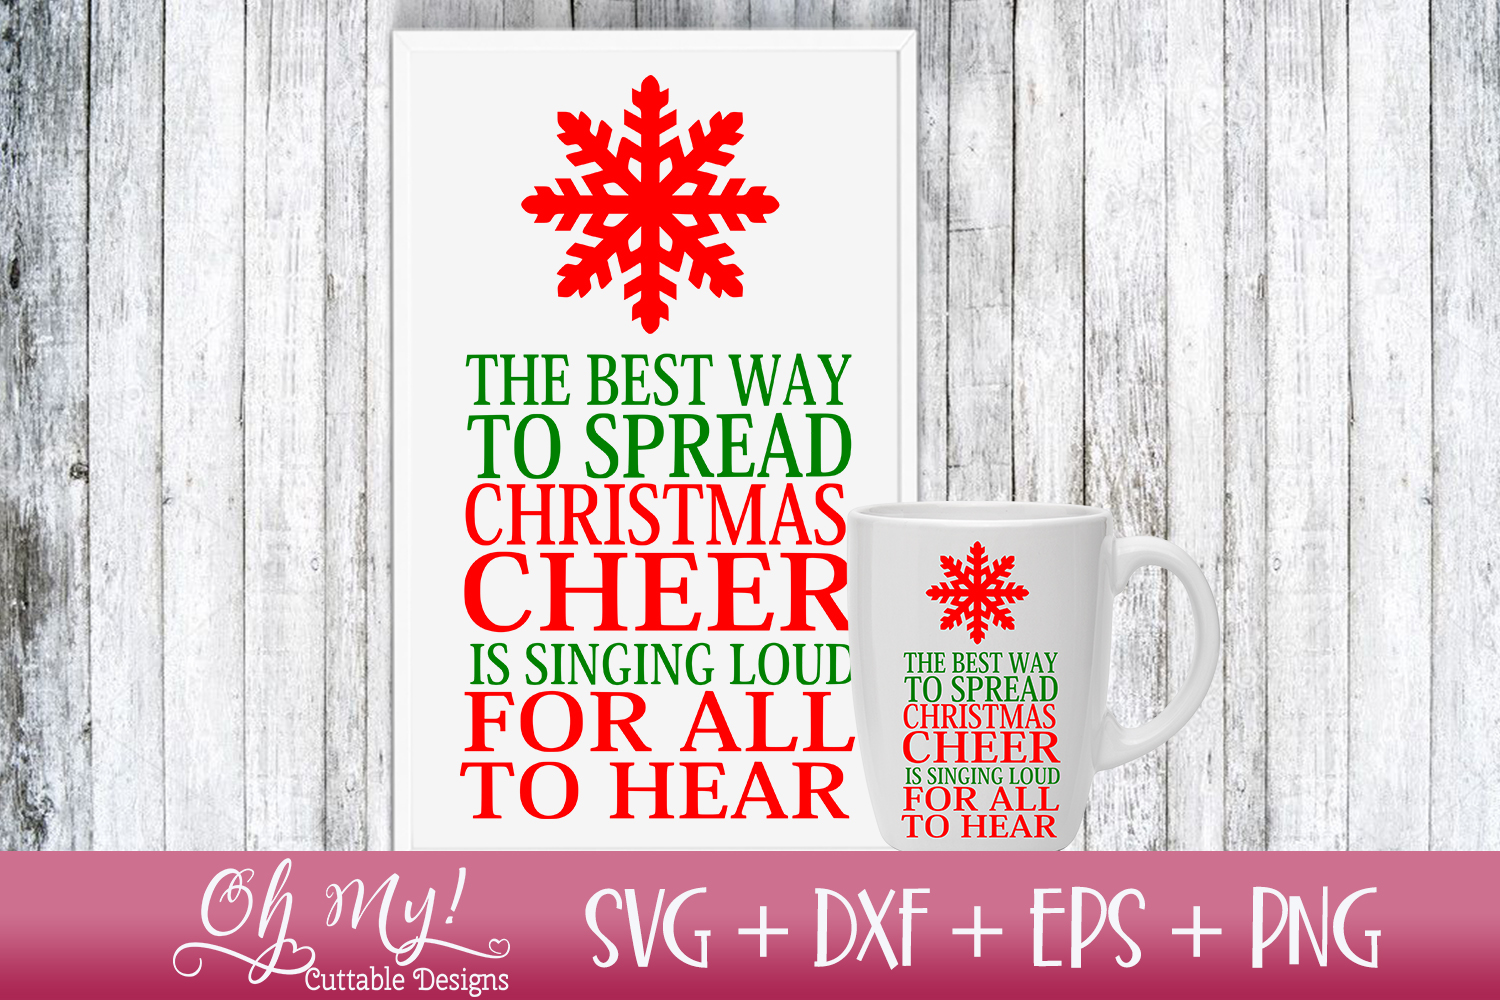 Spread Christmas Cheer - SVG DXF EPS PNG Cutting File example image 3